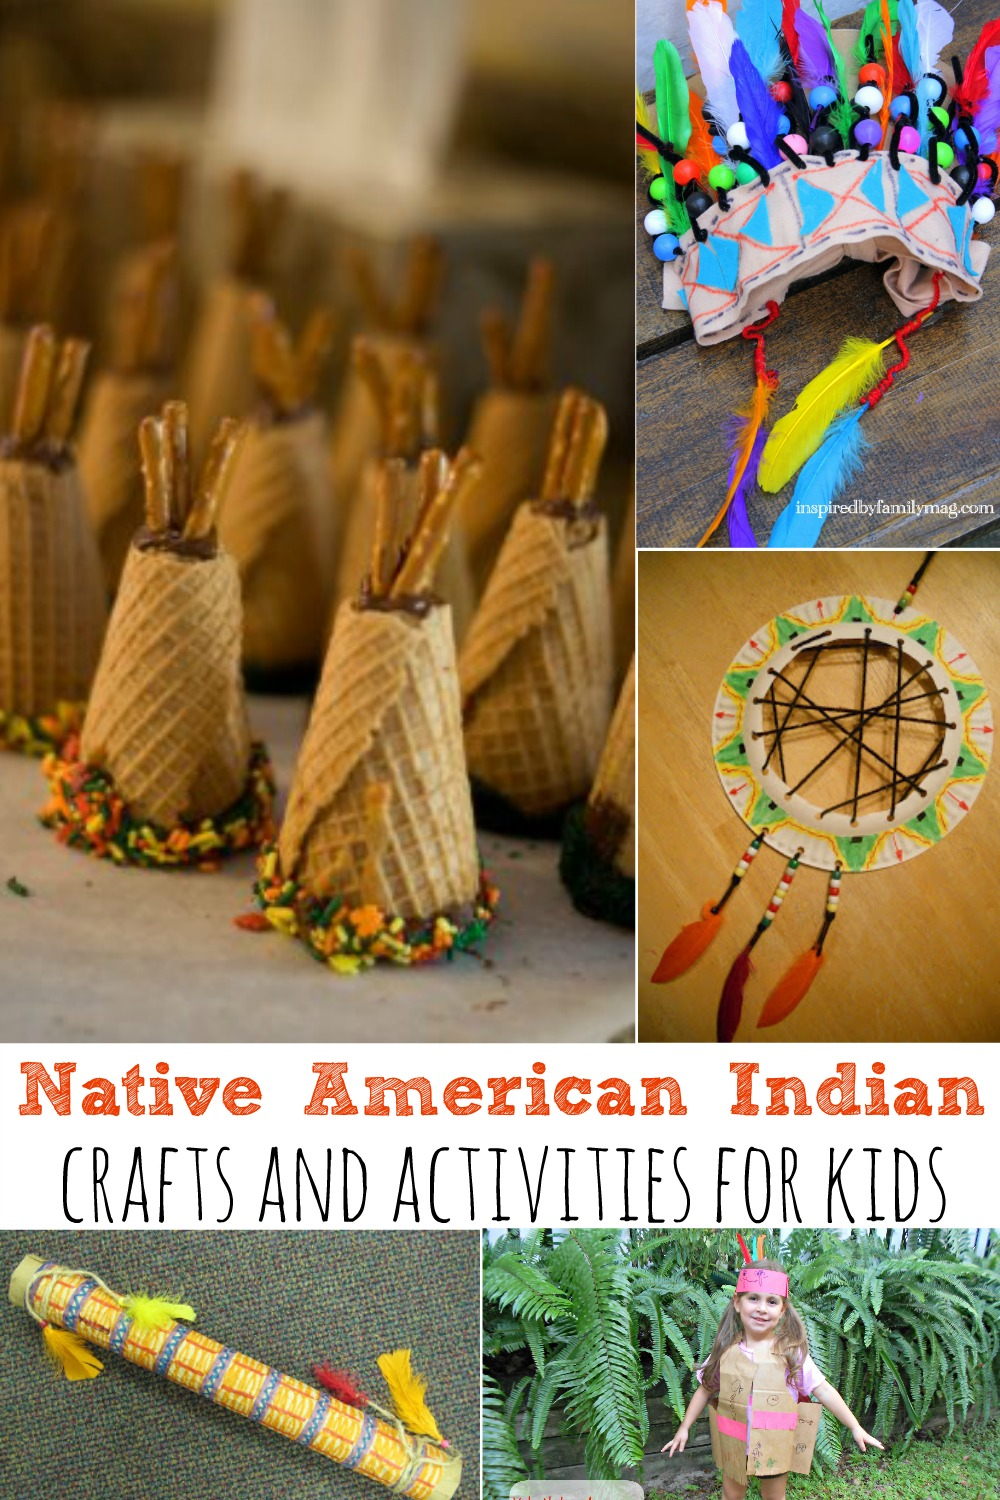 Native American Indian Crafts And Activities For Kids